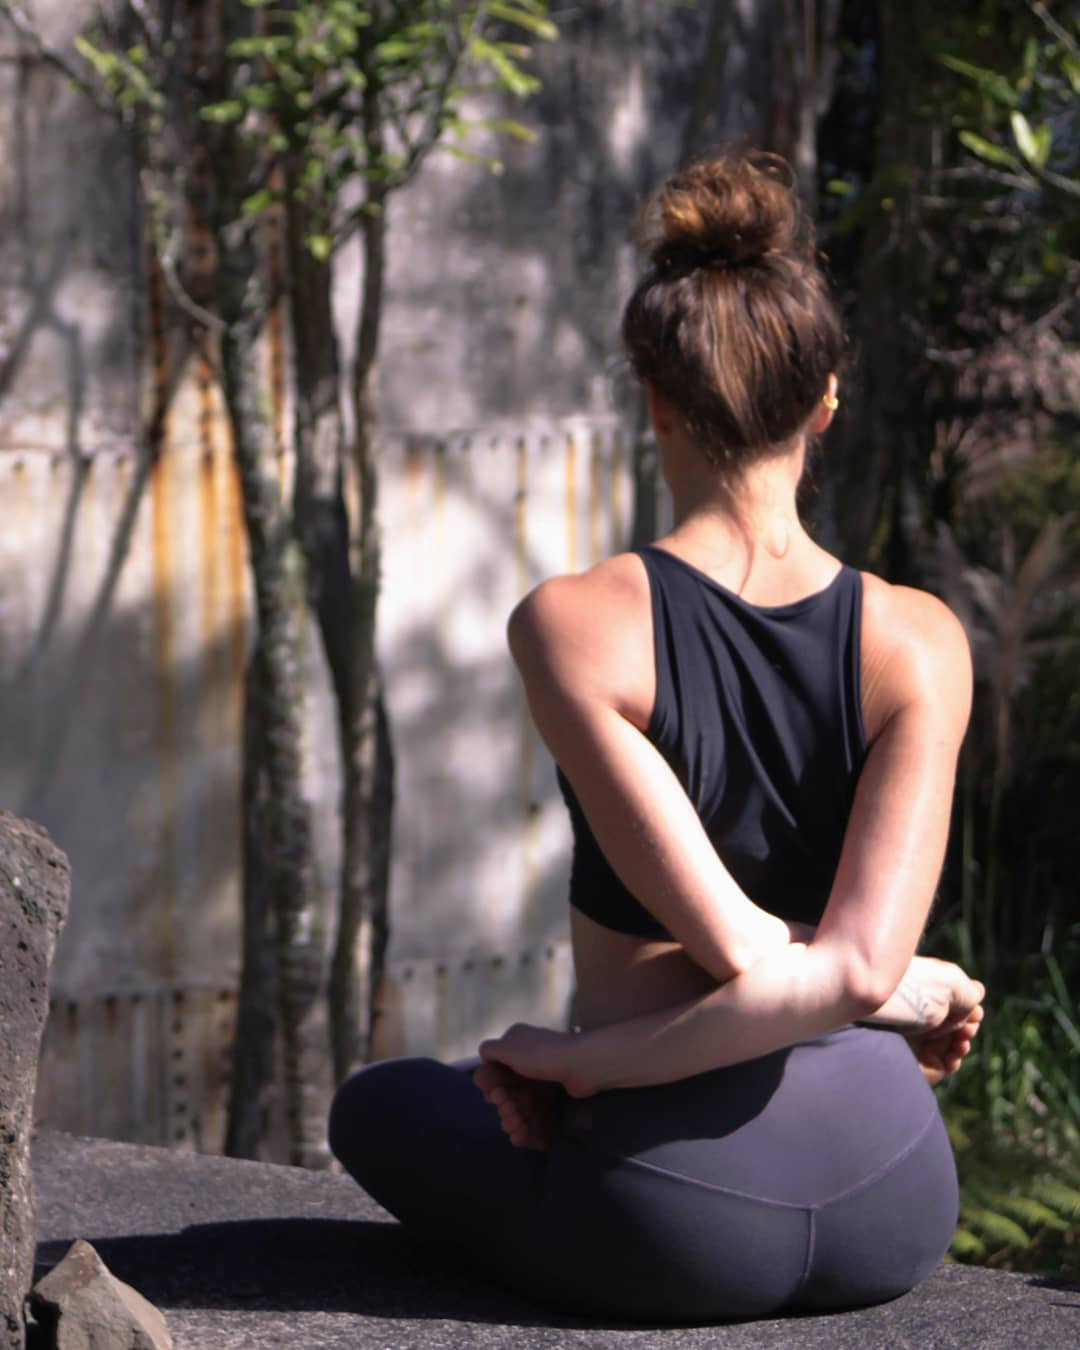 Baddha Padmasana Or Locked Lotus Pose